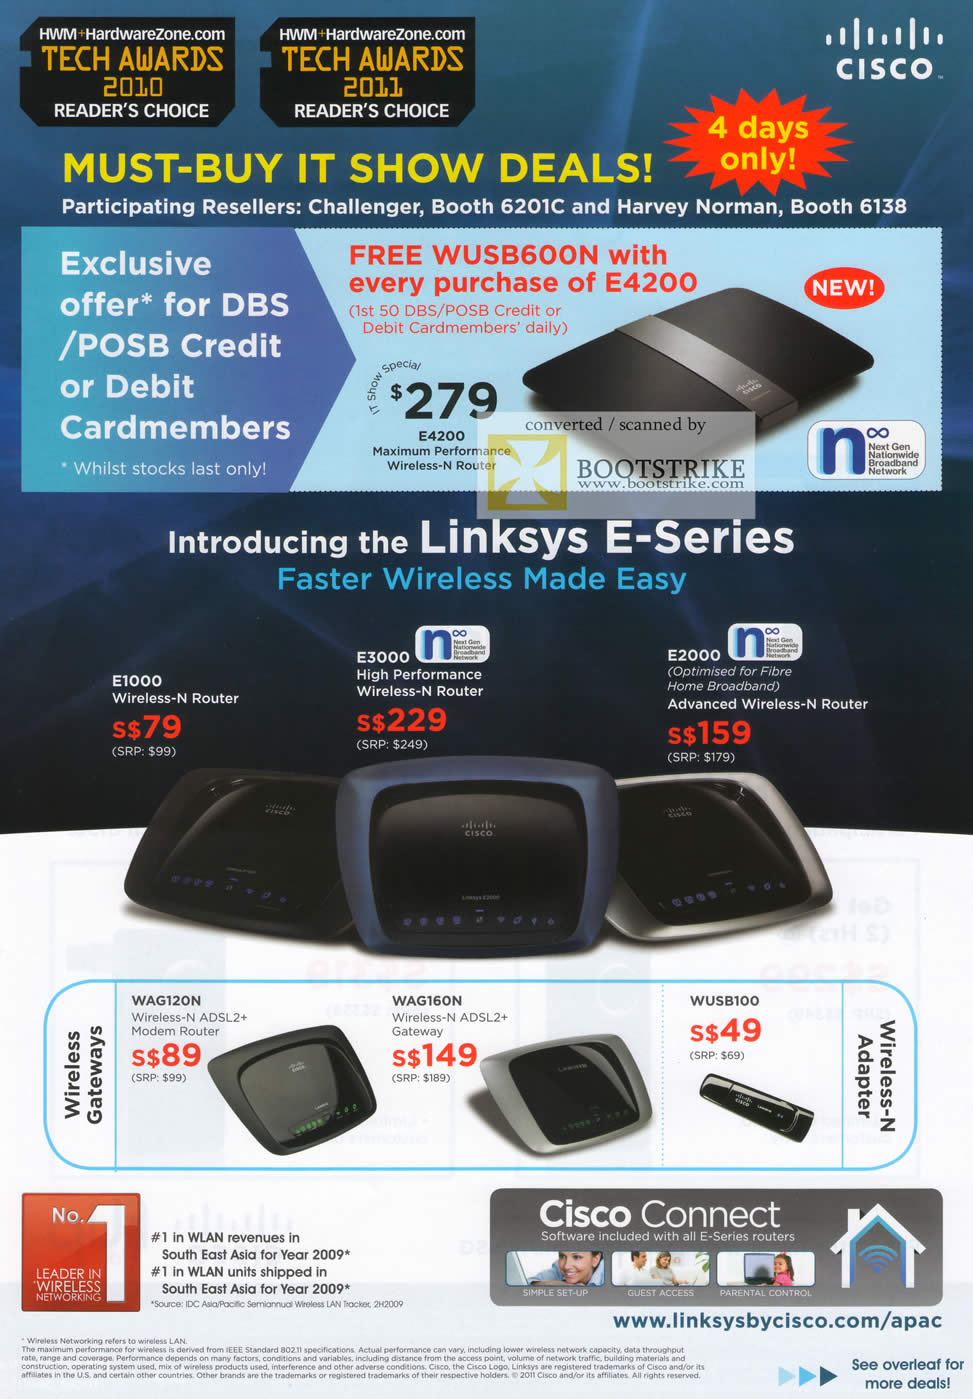 IT Show 2011 price list image brochure of Cisco Linksys E-Series W4200 Wireless N Router E1000 E3000 E2000 WAG120N WAG160N WUSB100 Challenger Harvey Norman